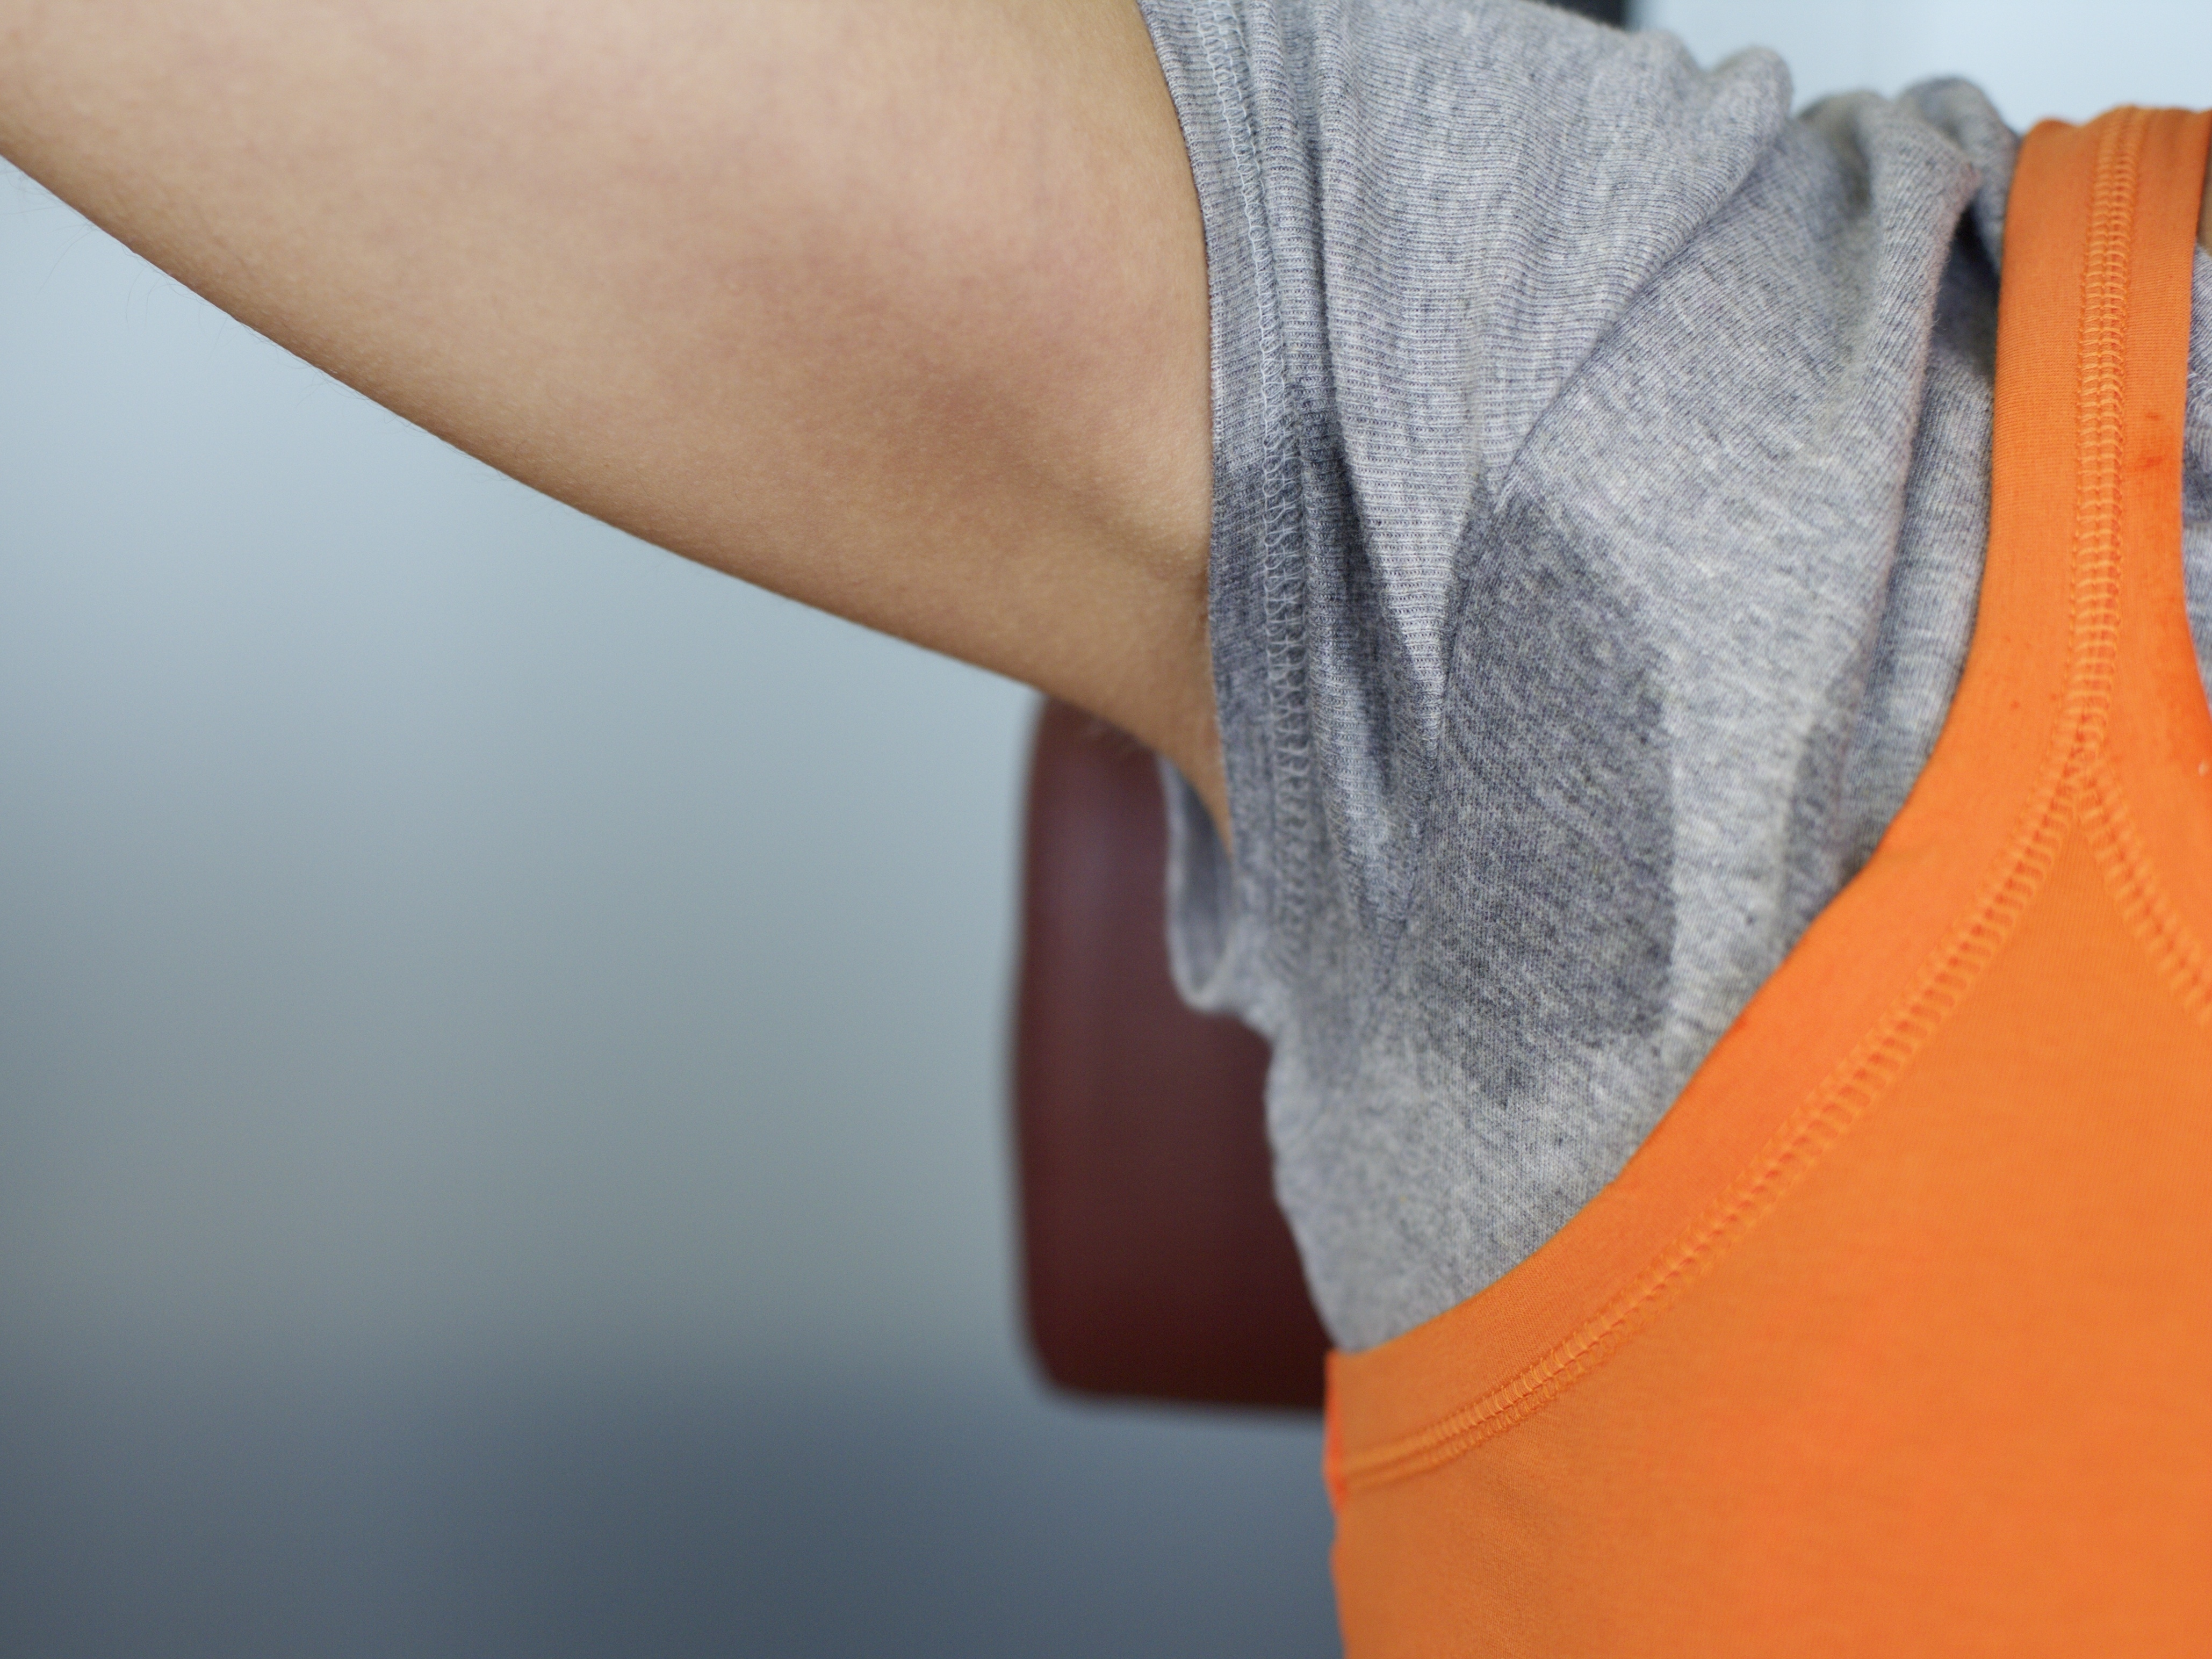 Stinky T-Shirt? Bacteria Love Polyester In A Special Way